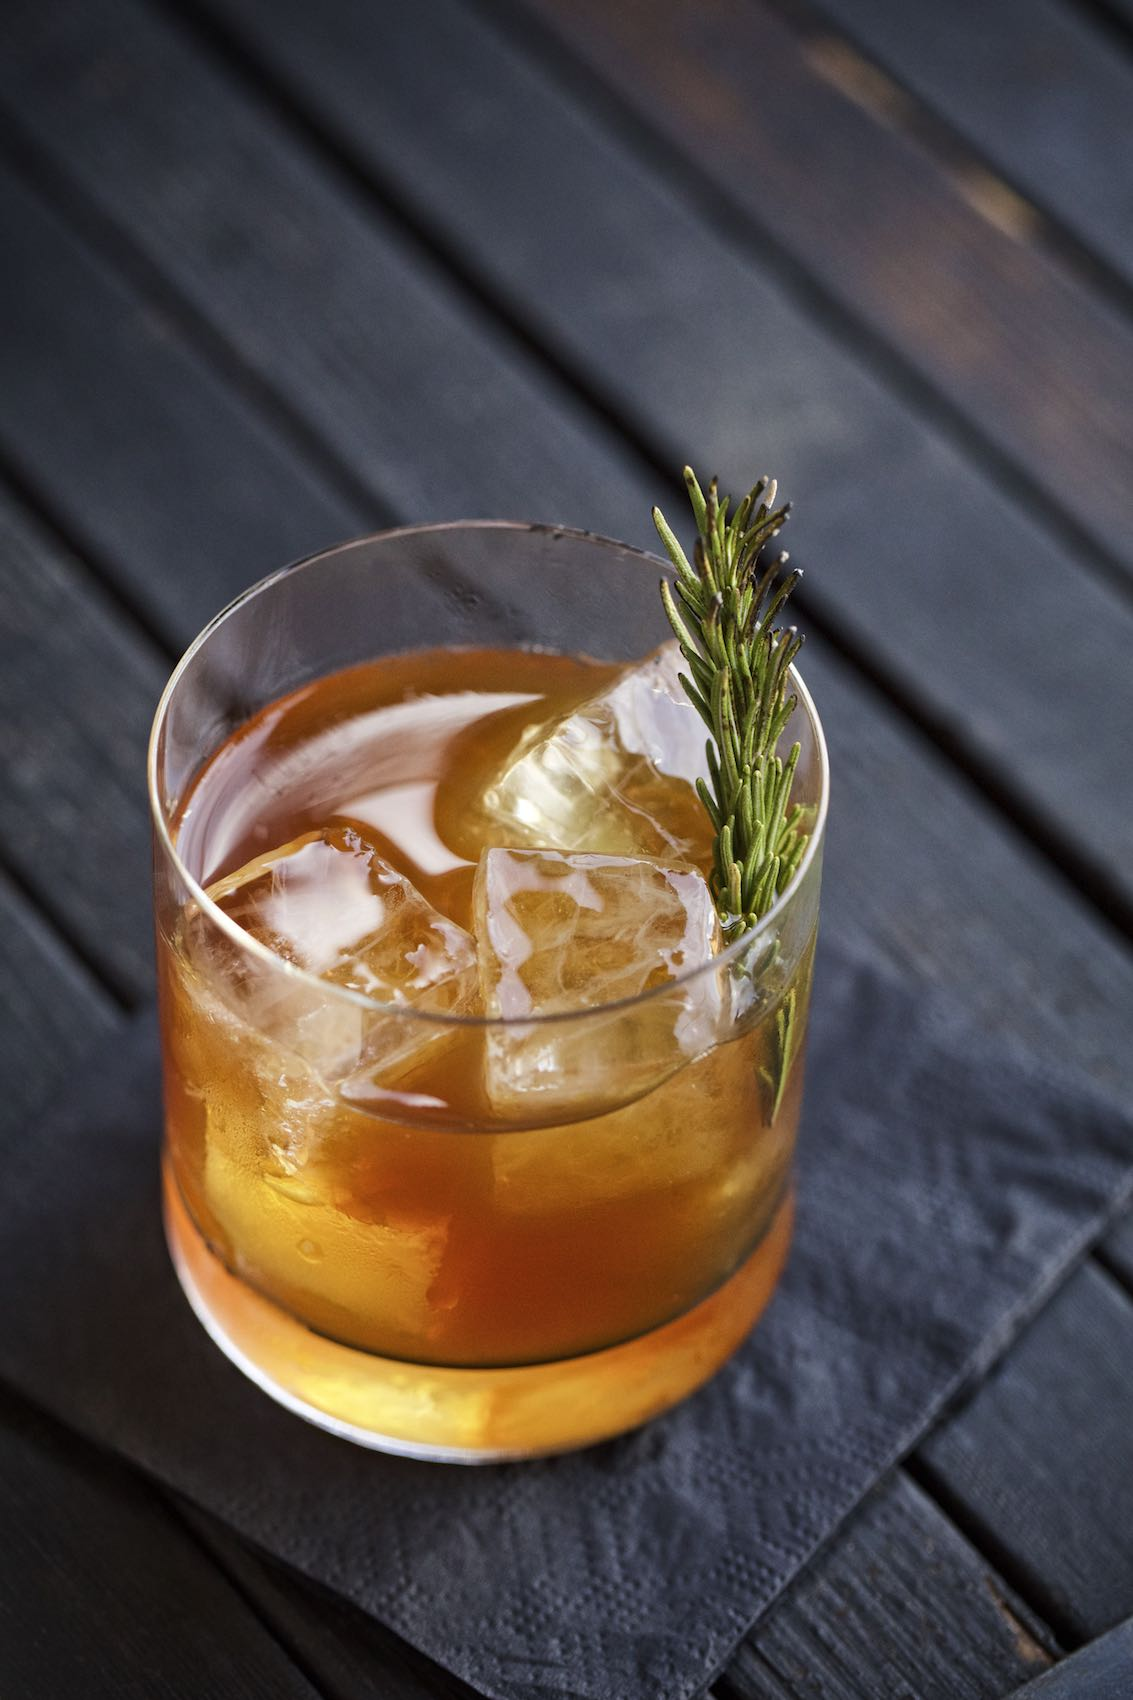 Jody Horton Photography - Iced whiskey cocktail with rosemary sprig at Kemuri, Austin, TX.